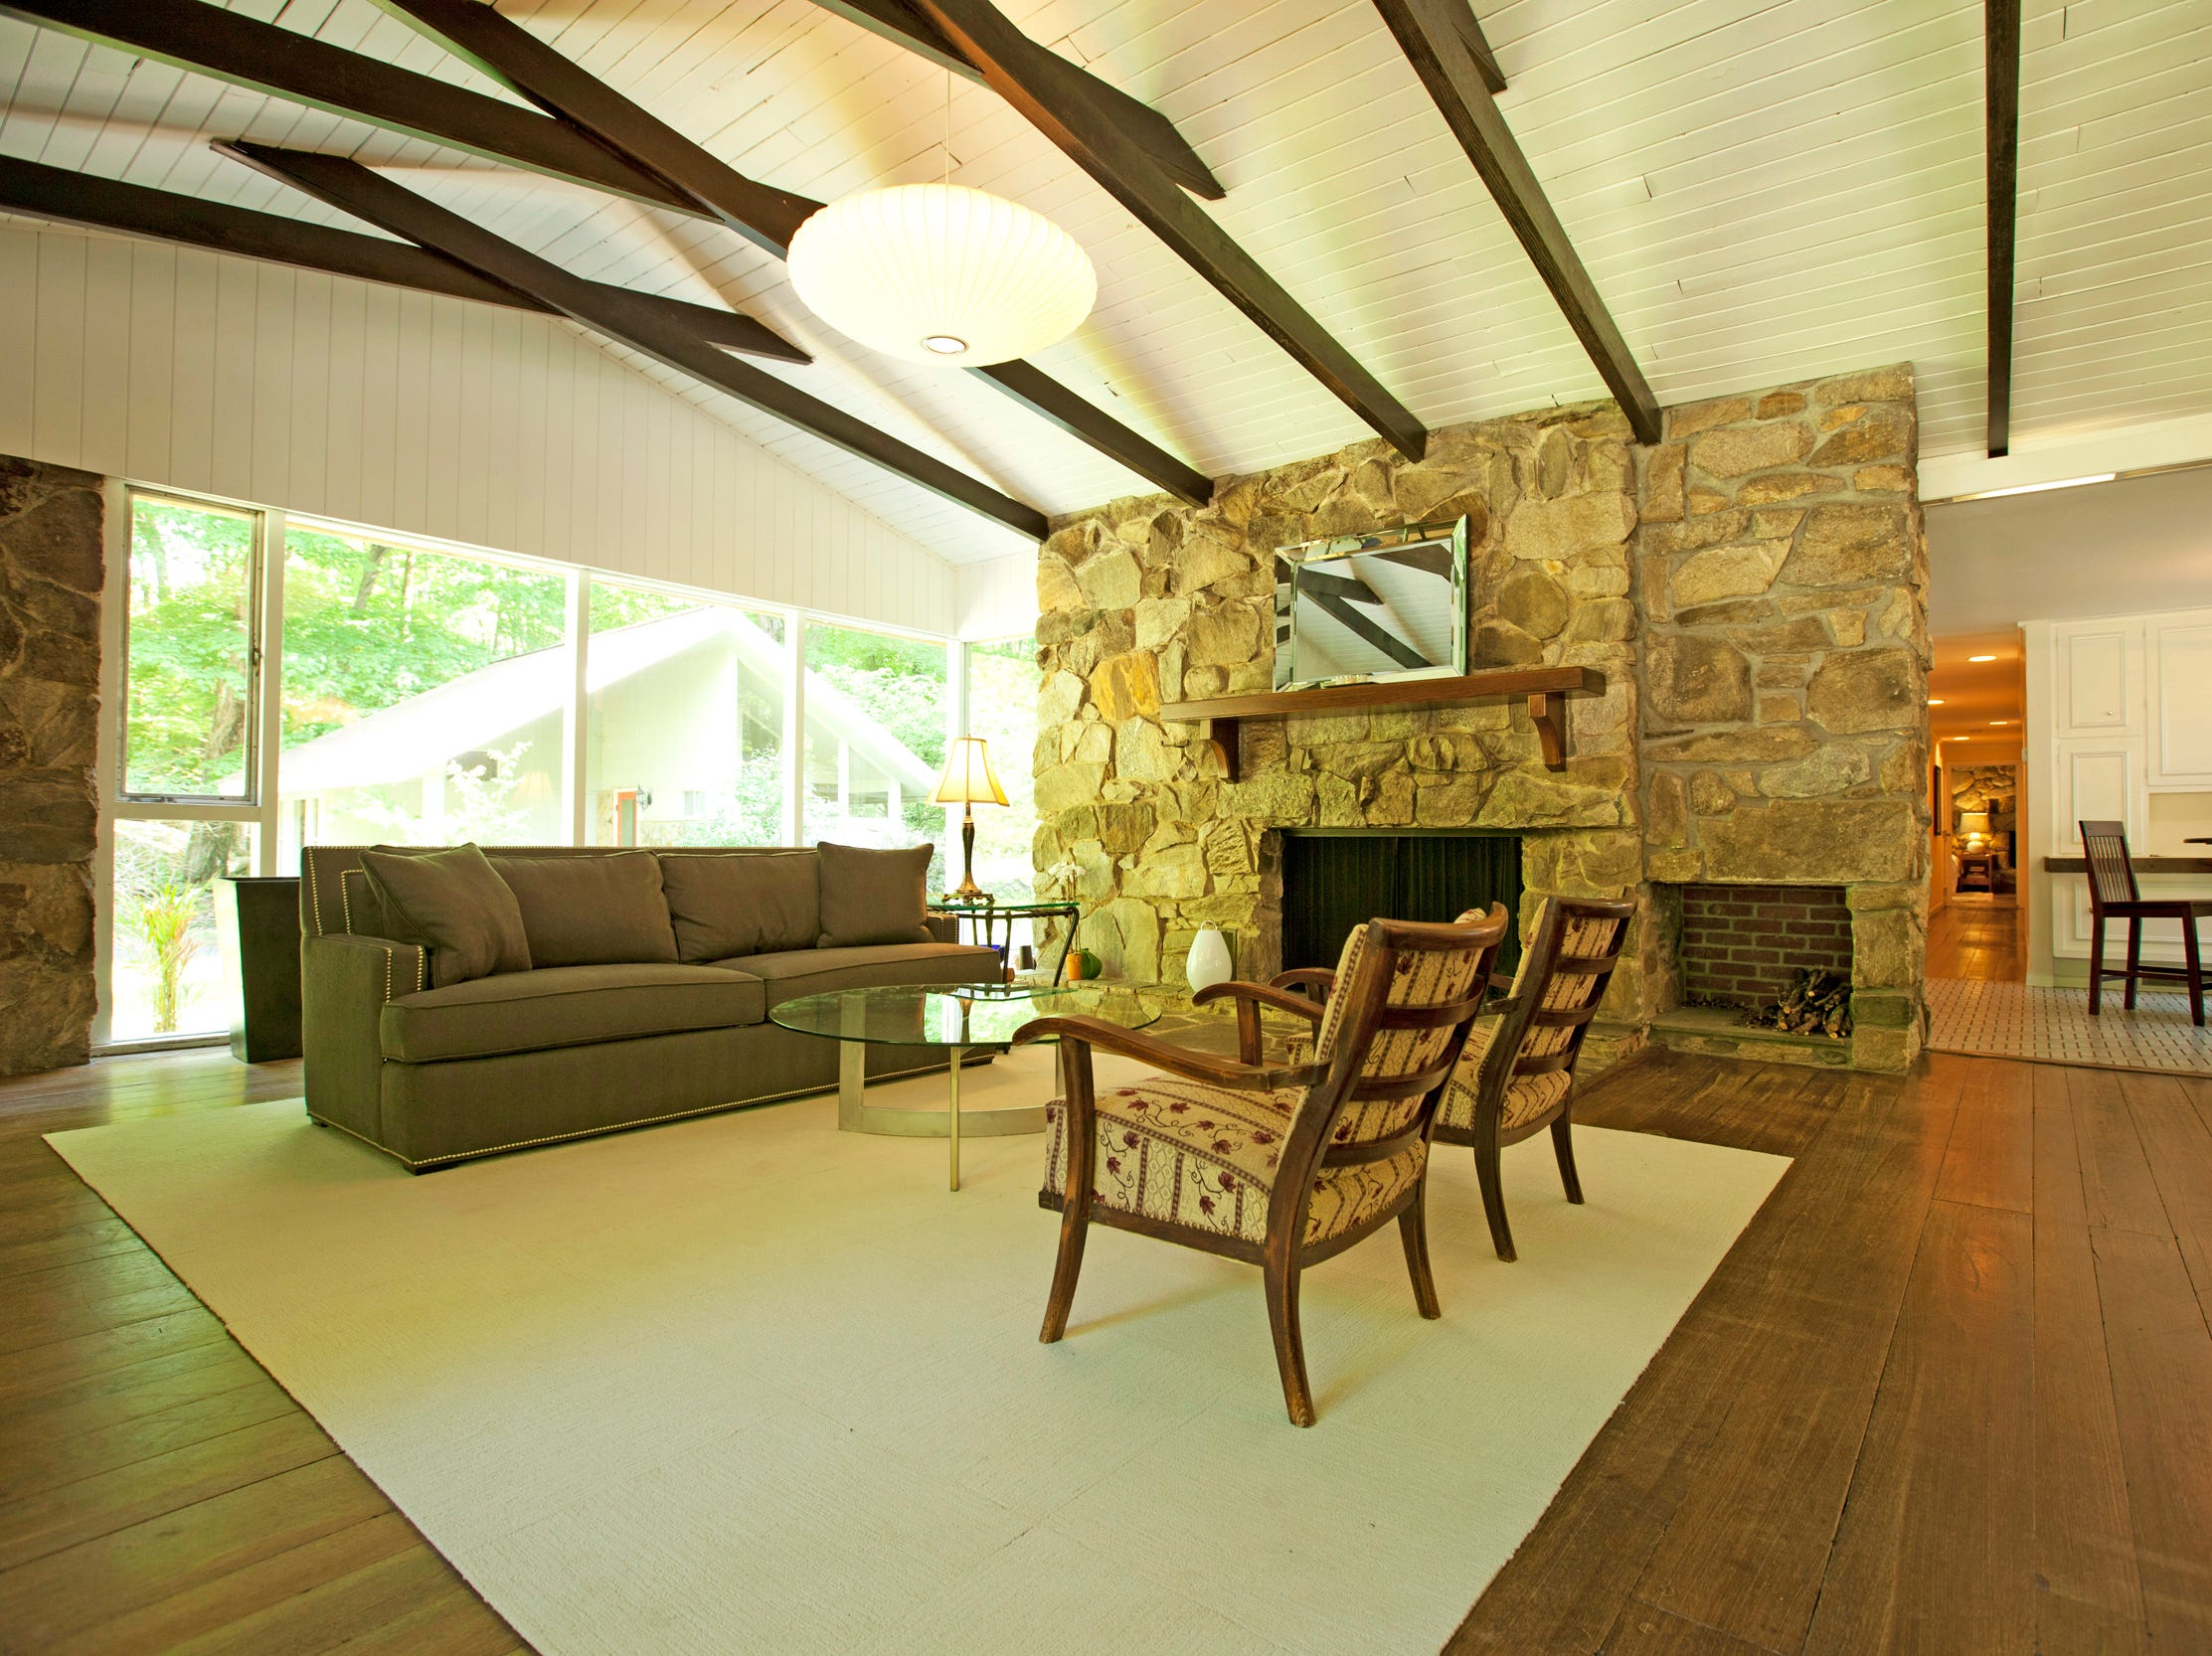 The striking masonry rock wall fireplace is the centerpiece of the open living space.